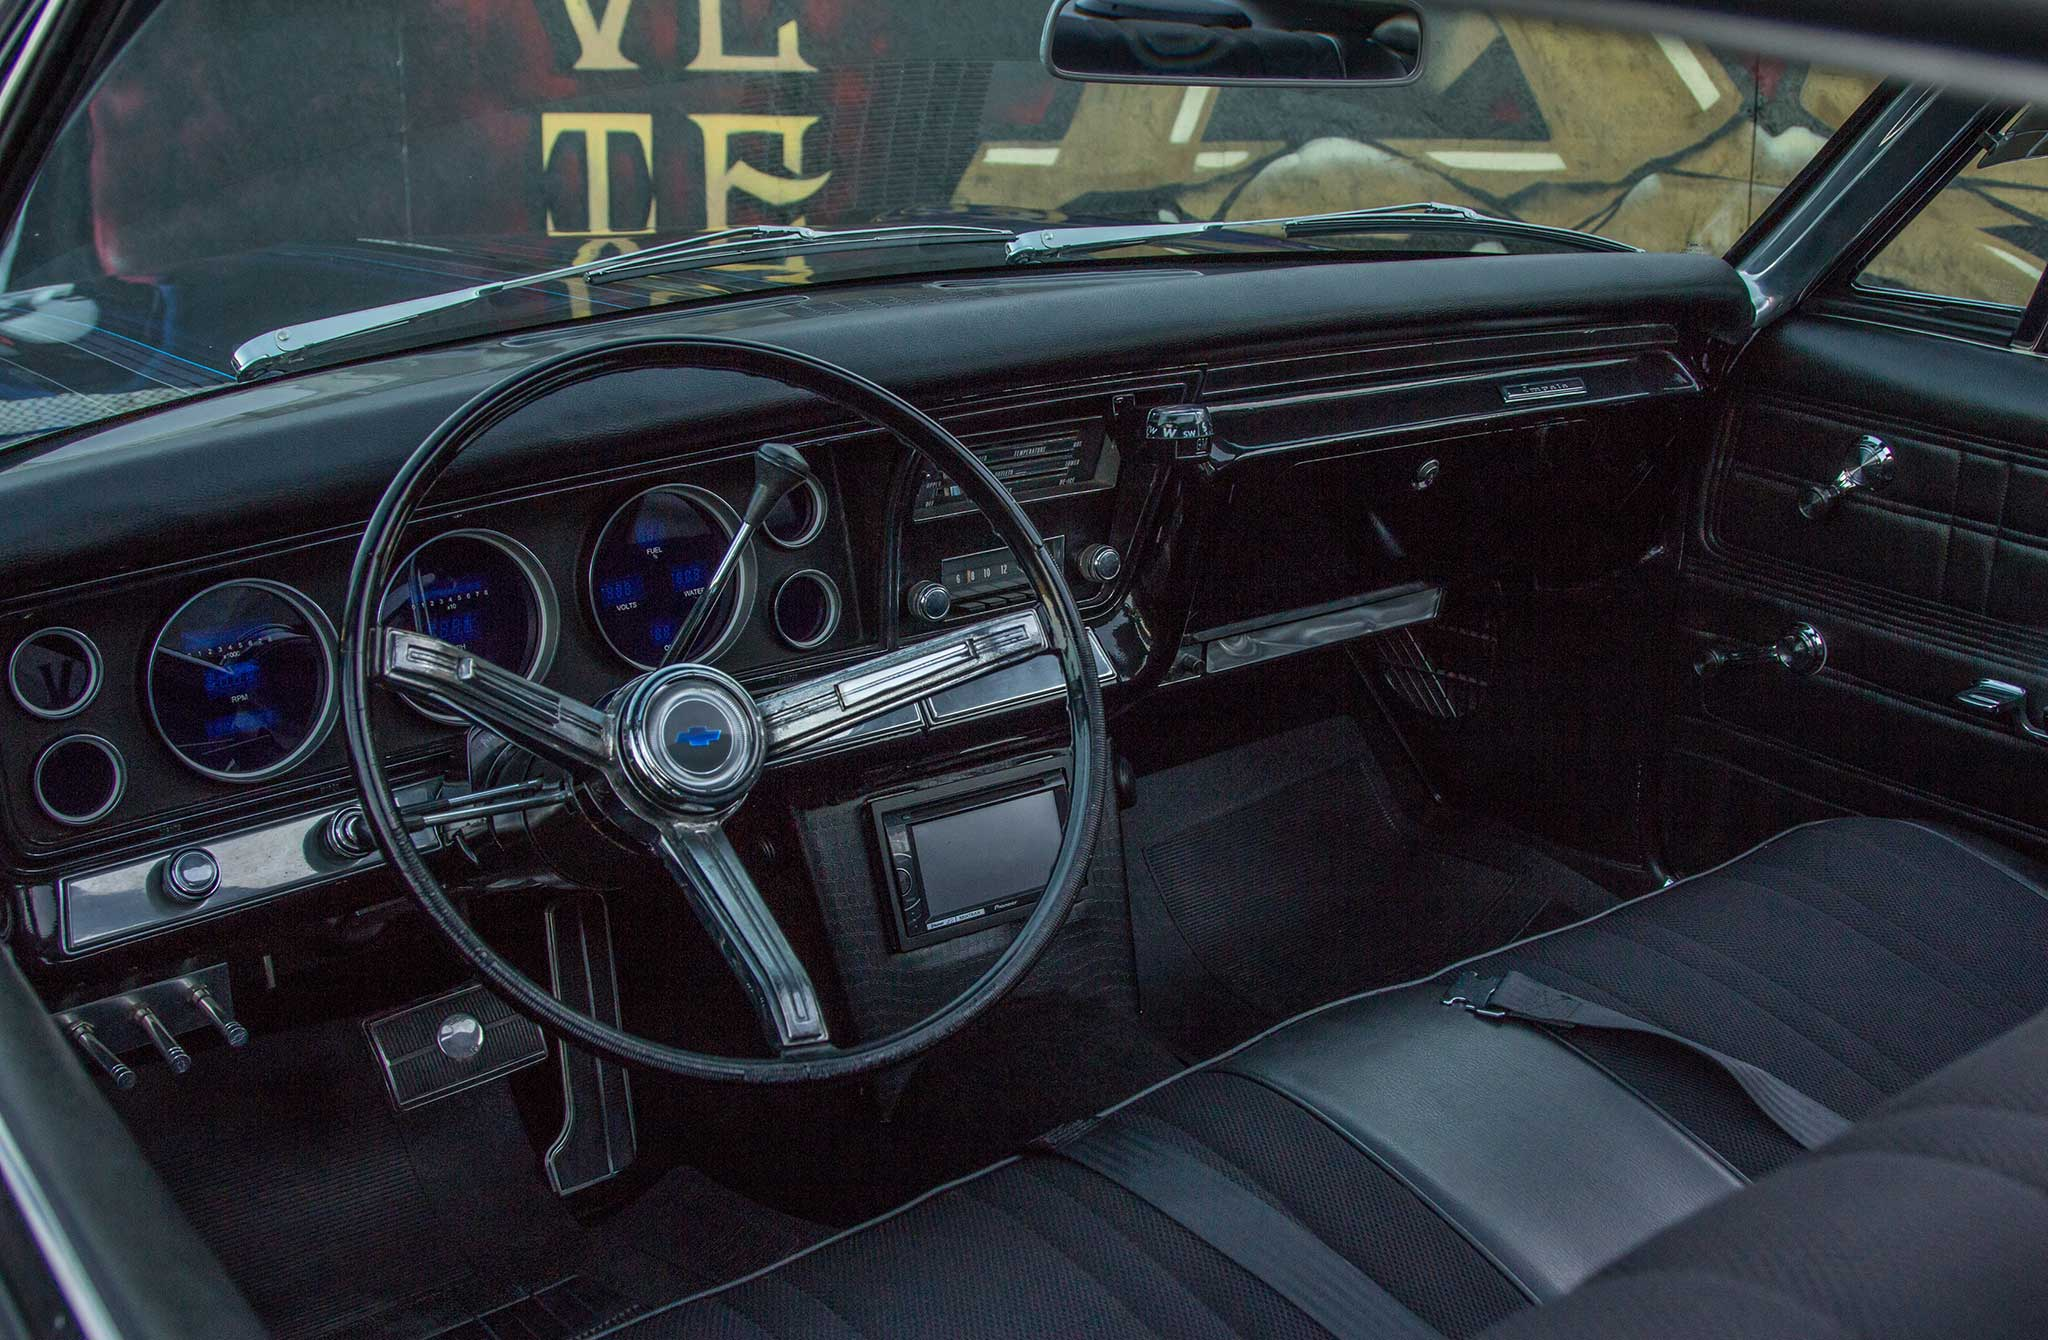 1967 chevrolet impala steering wheel 023